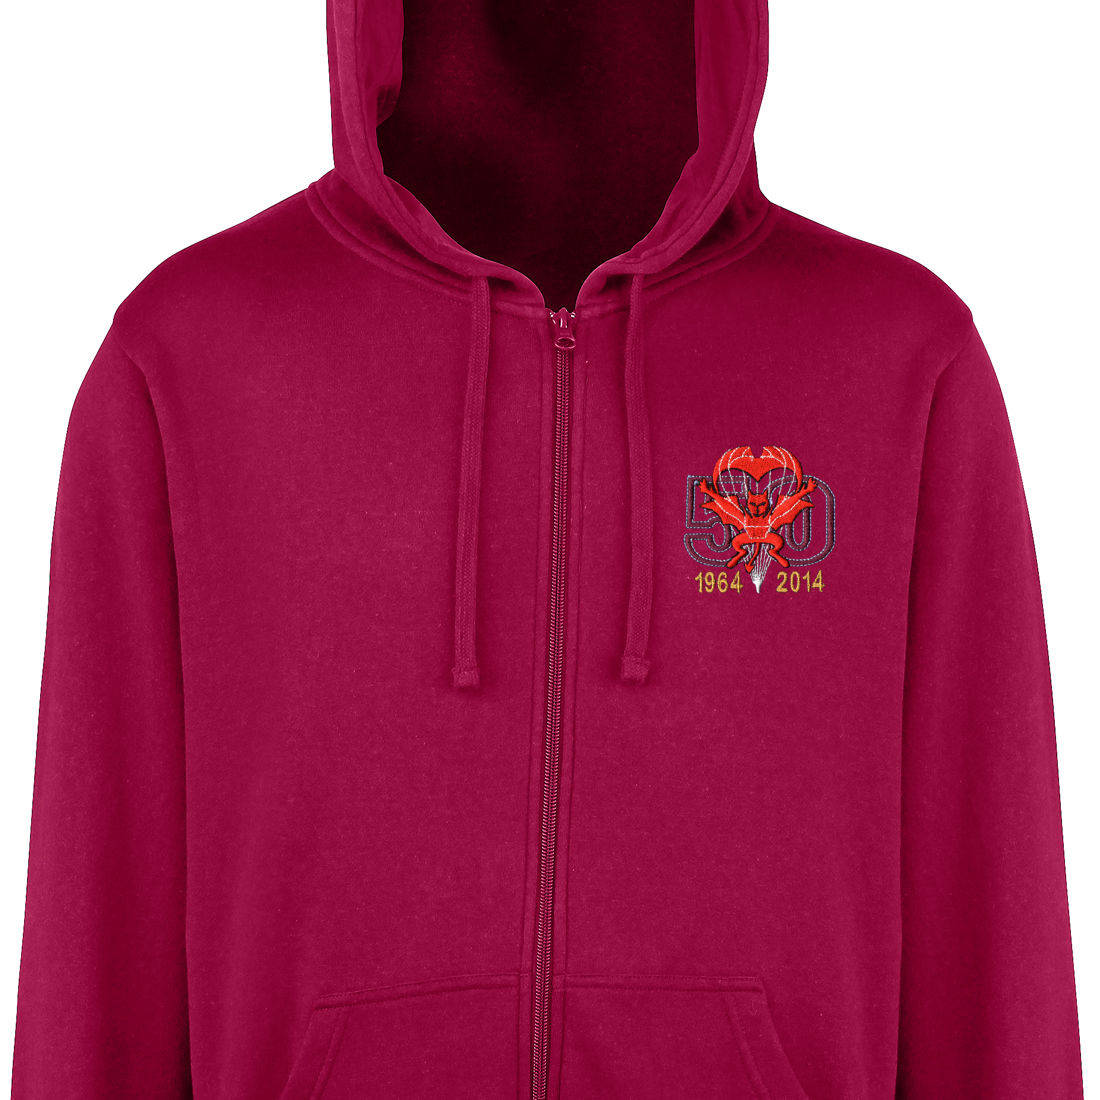 Onesie (All-in-One) - Maroon - Red Devils 50th